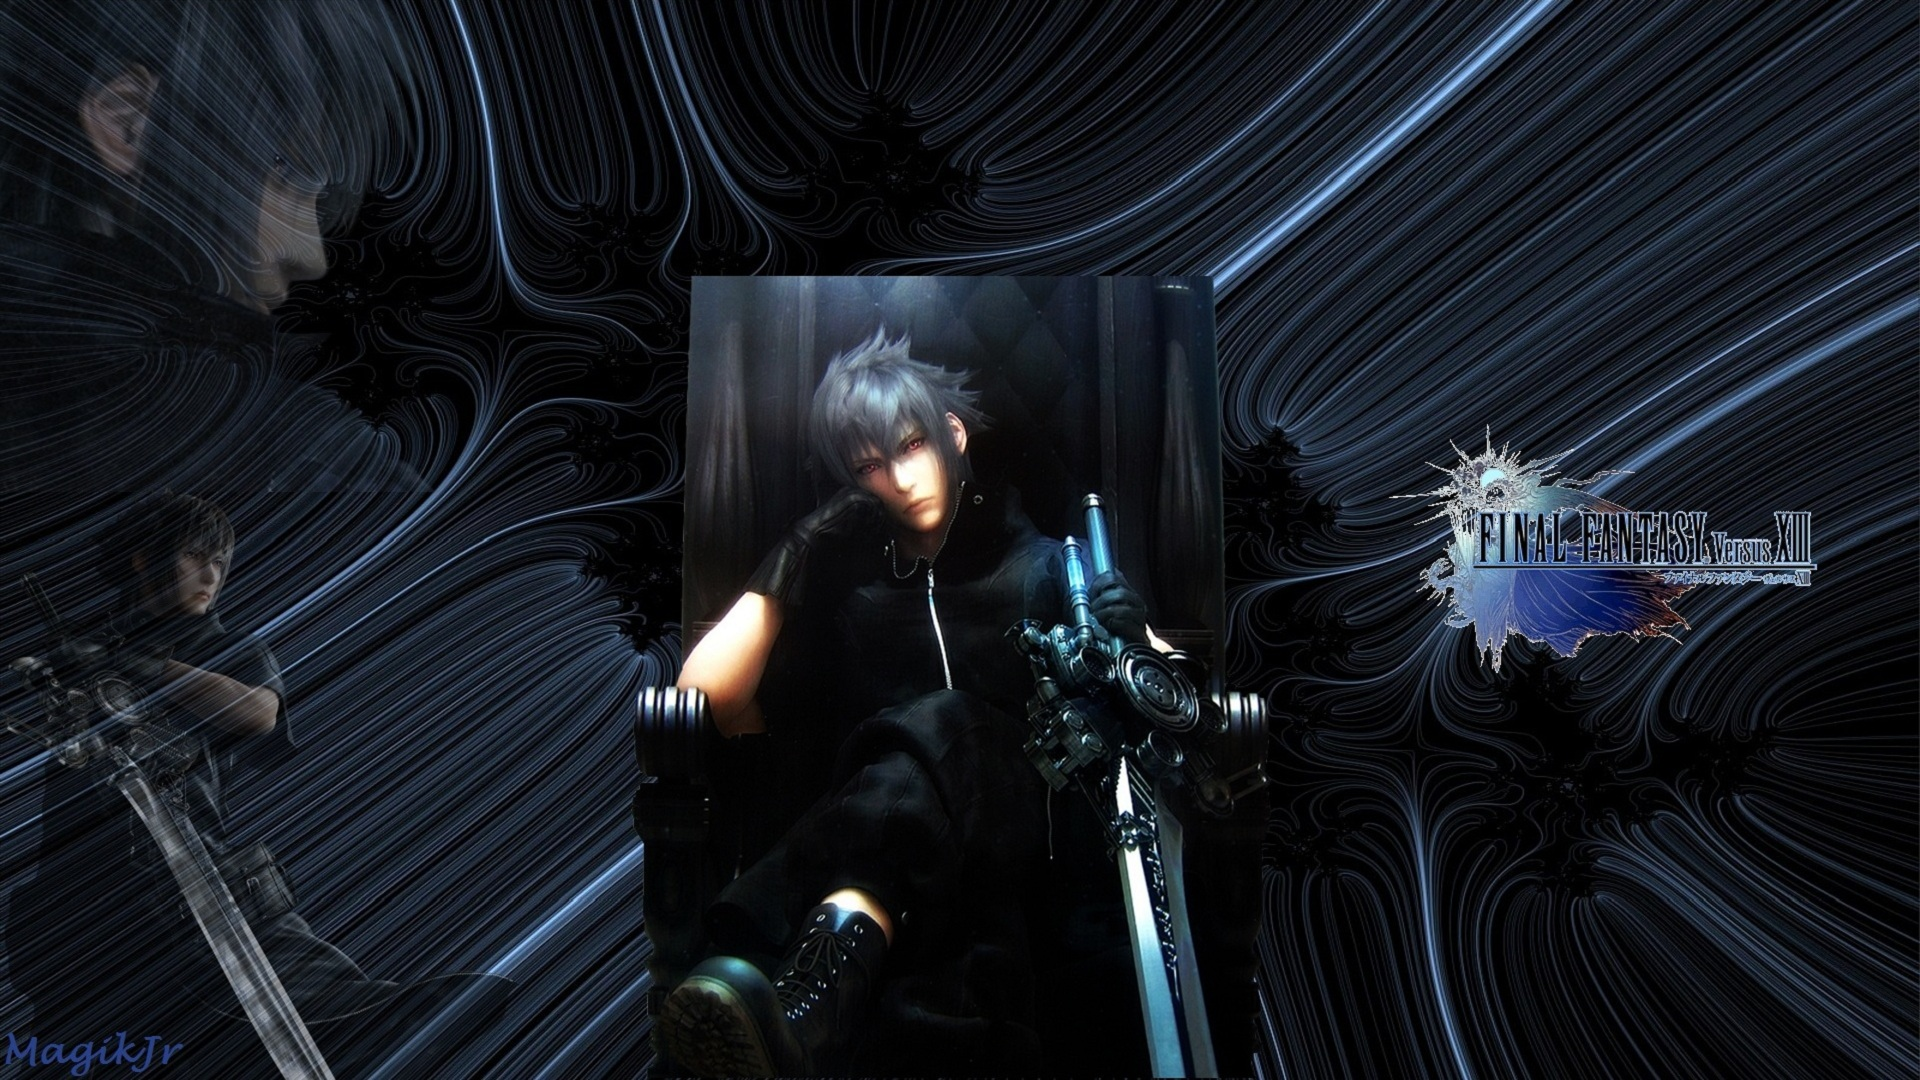 Final Fantasy Versus Xiii Hd Wallpaper Background Image